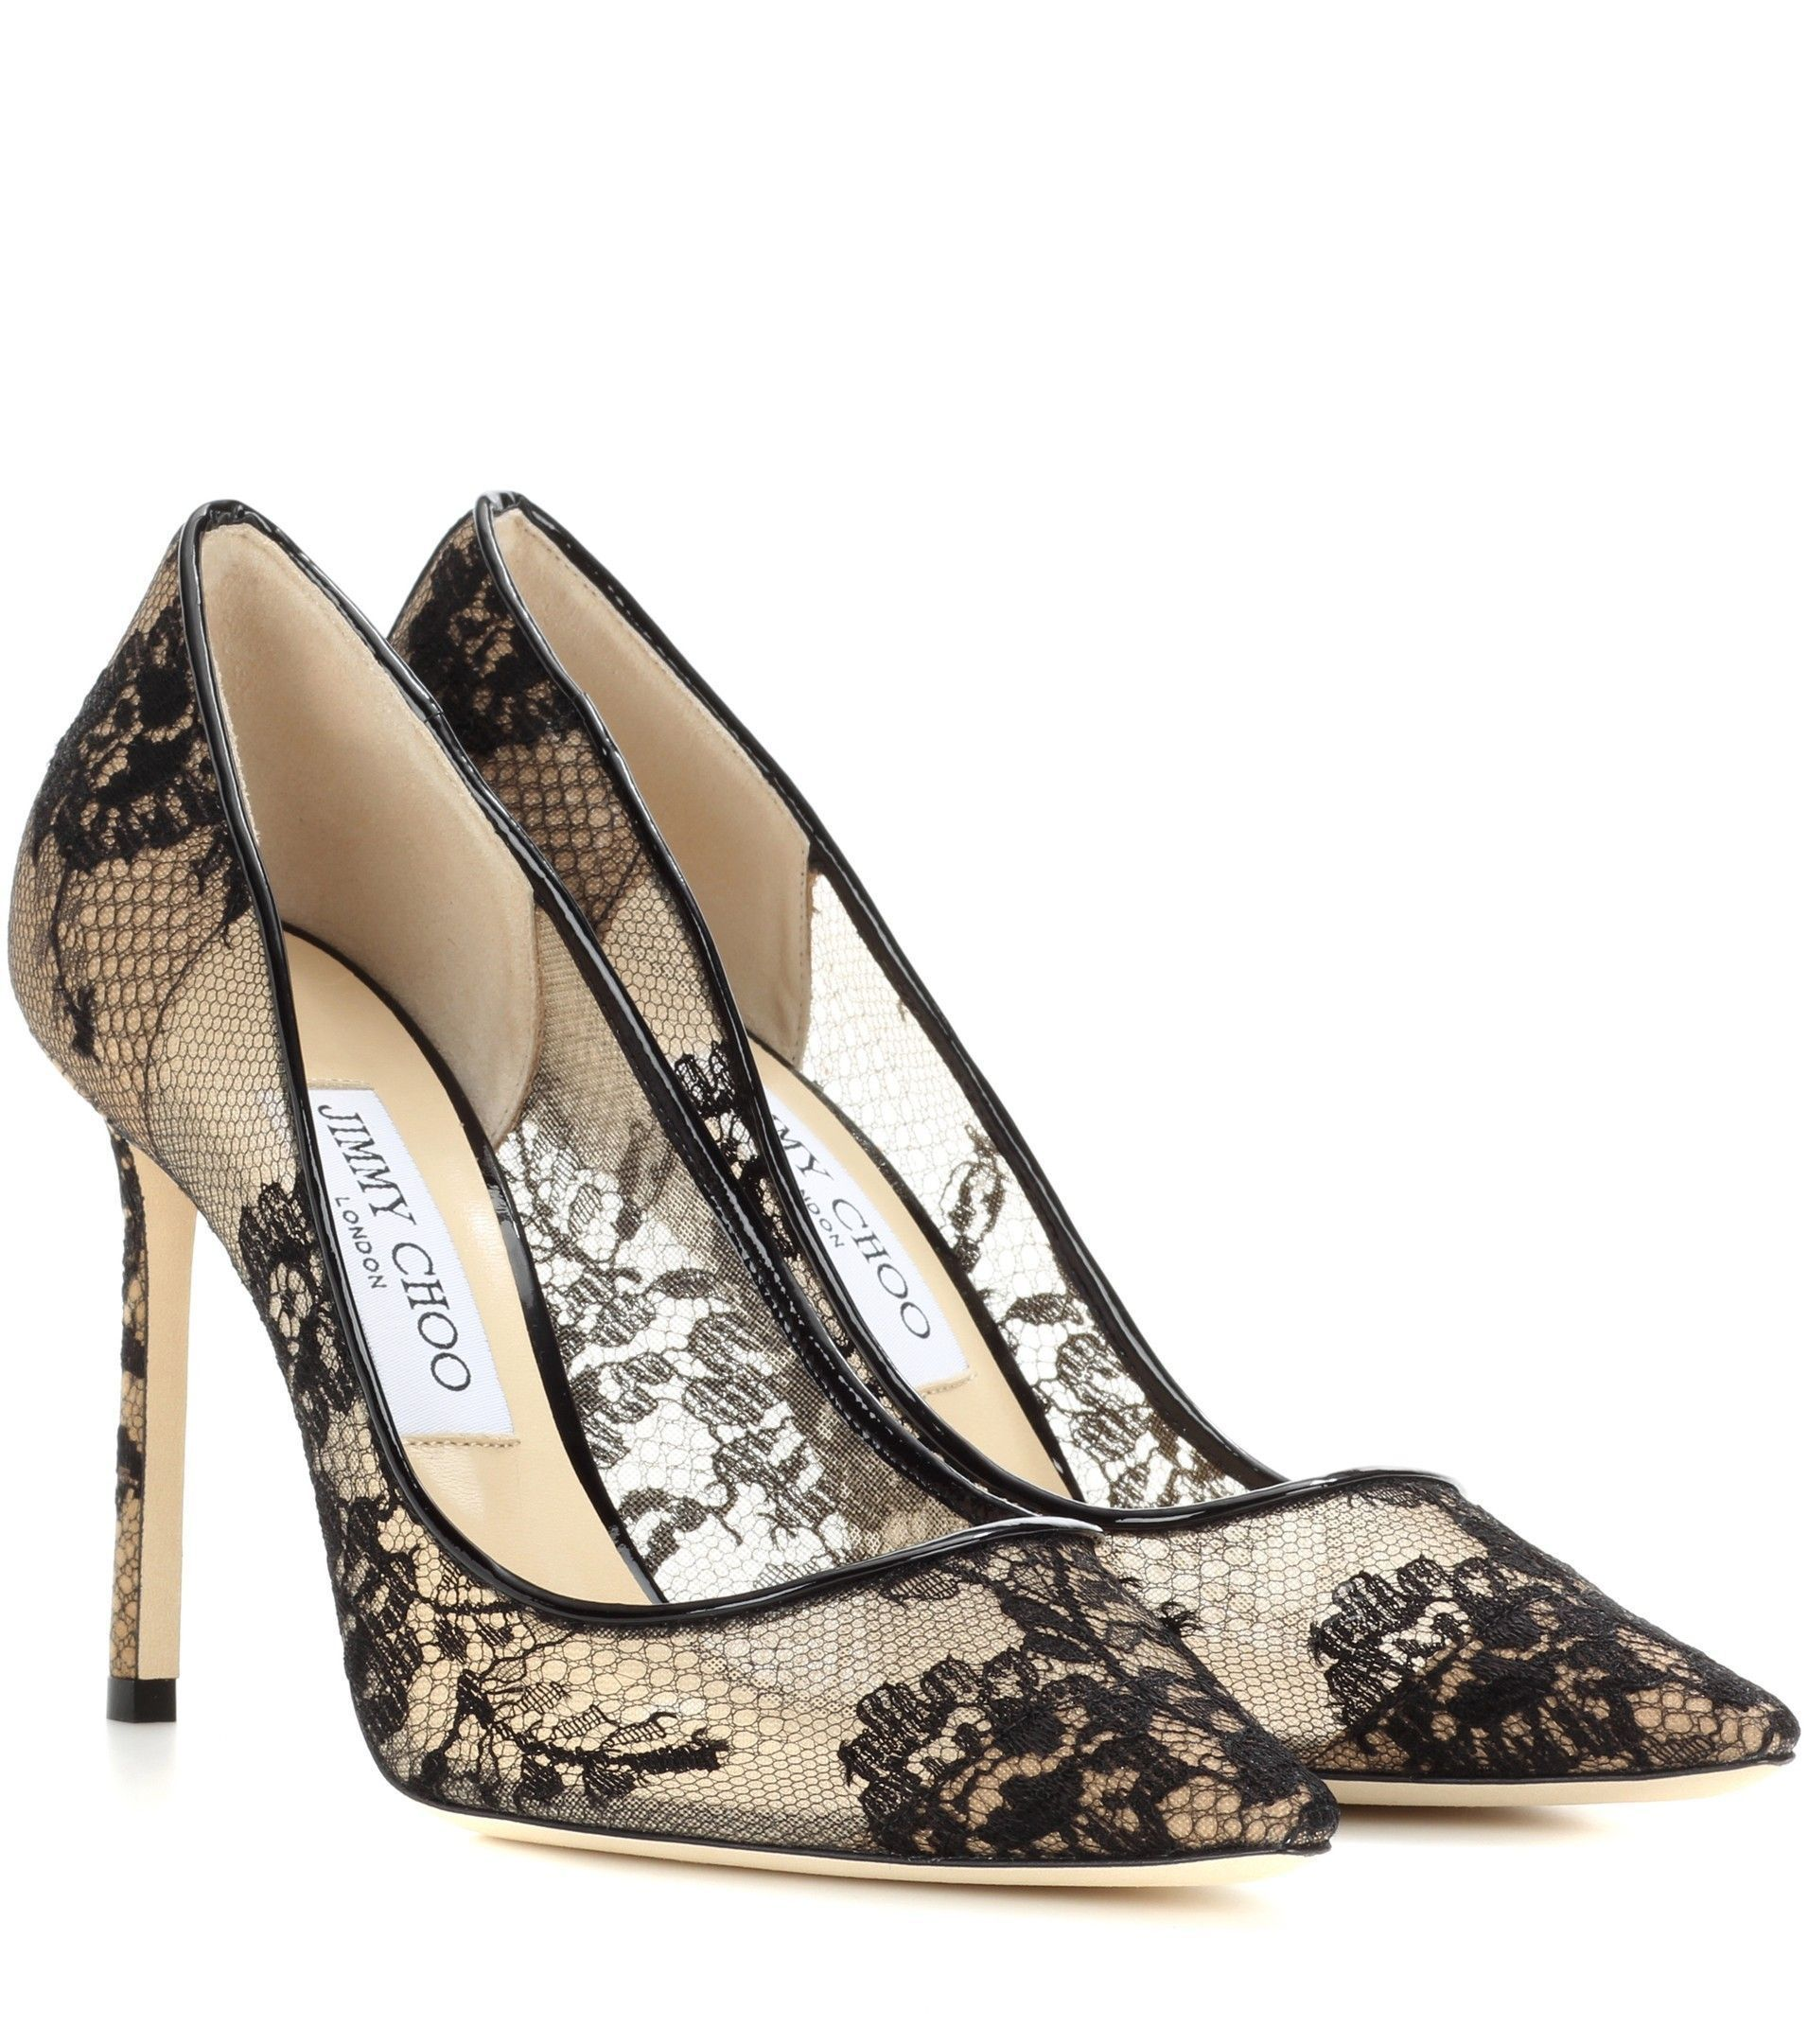 008b4628b37 Jimmy Choo Pointed Toe JIMMY CHOO ROMY 100 lace pumps  JimmyChooHeels